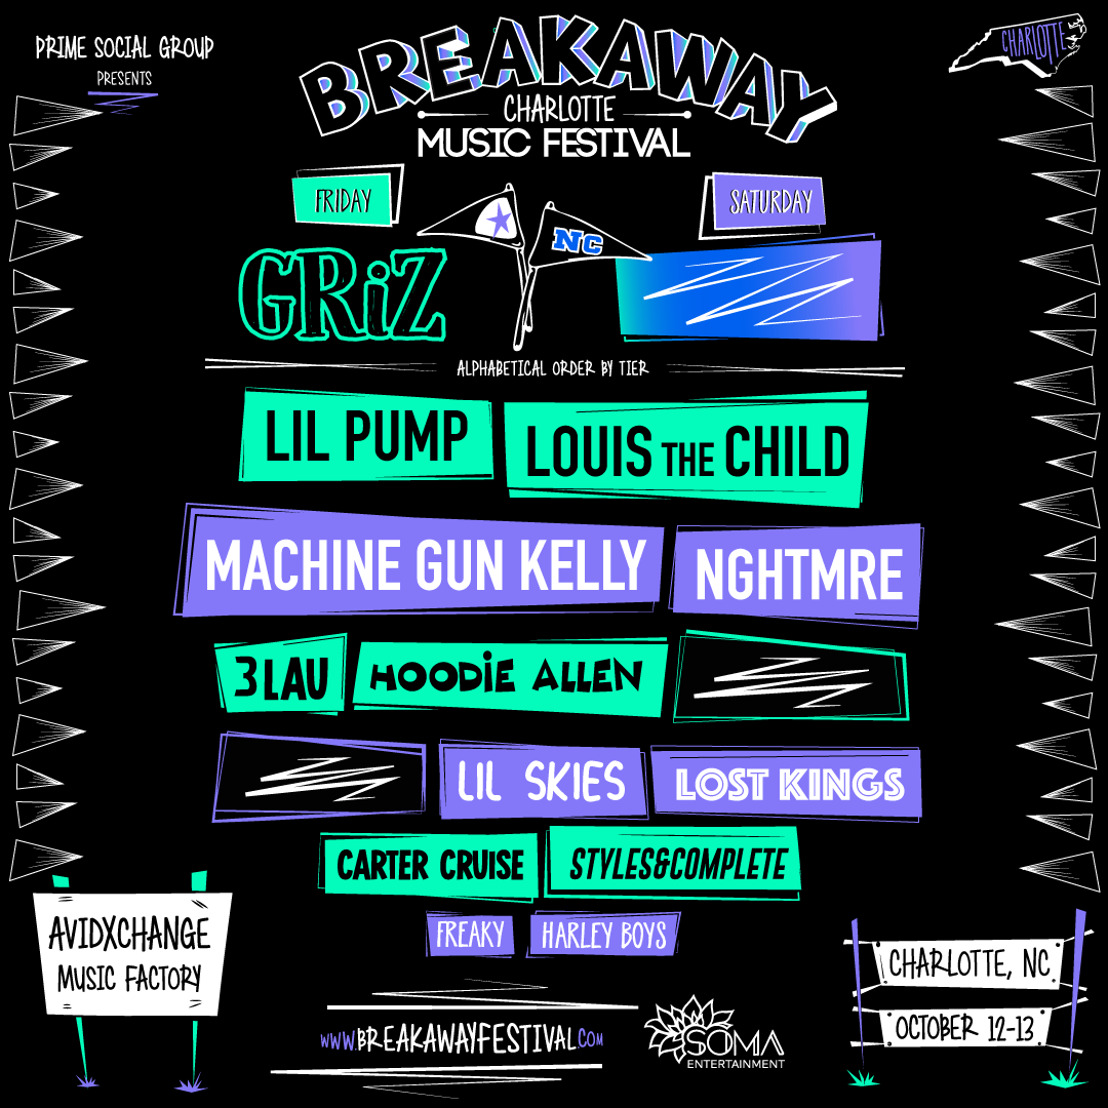 Prime Social Group Announces the Highly Anticipated Phase One Lineup for Breakaway Music Festival in Charlotte, NC